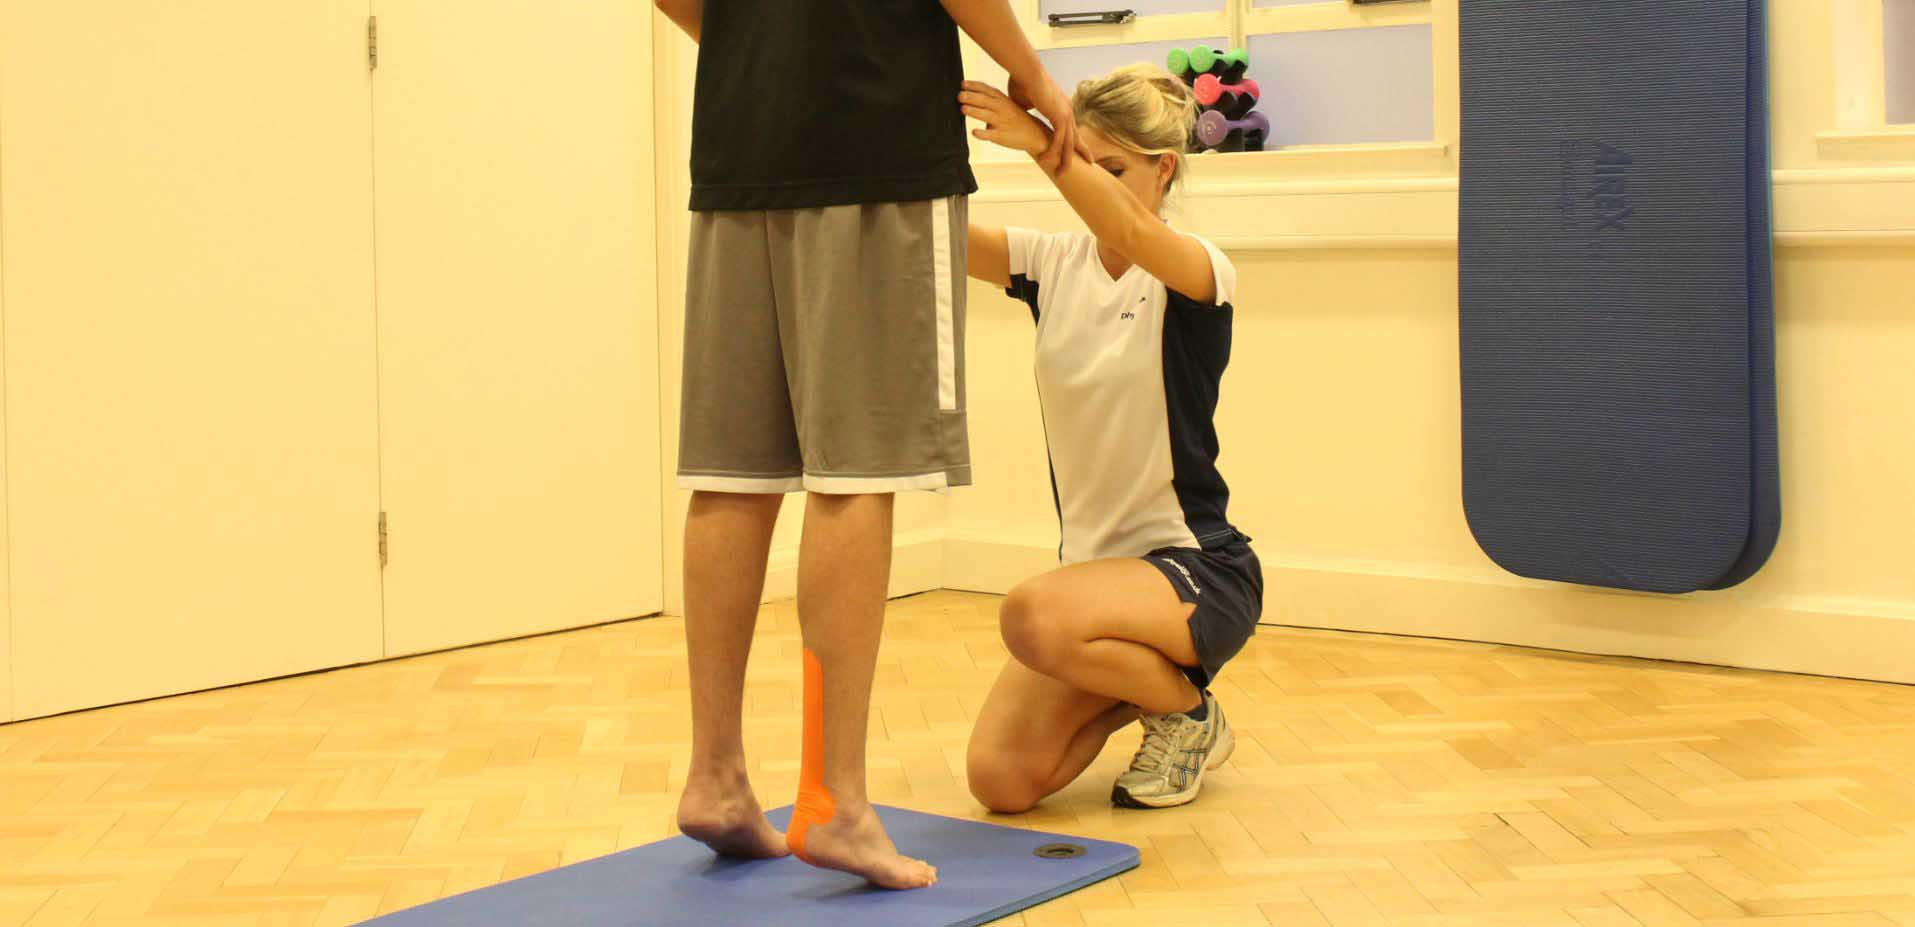 Supportive tape applied to ankle by experienced therapist